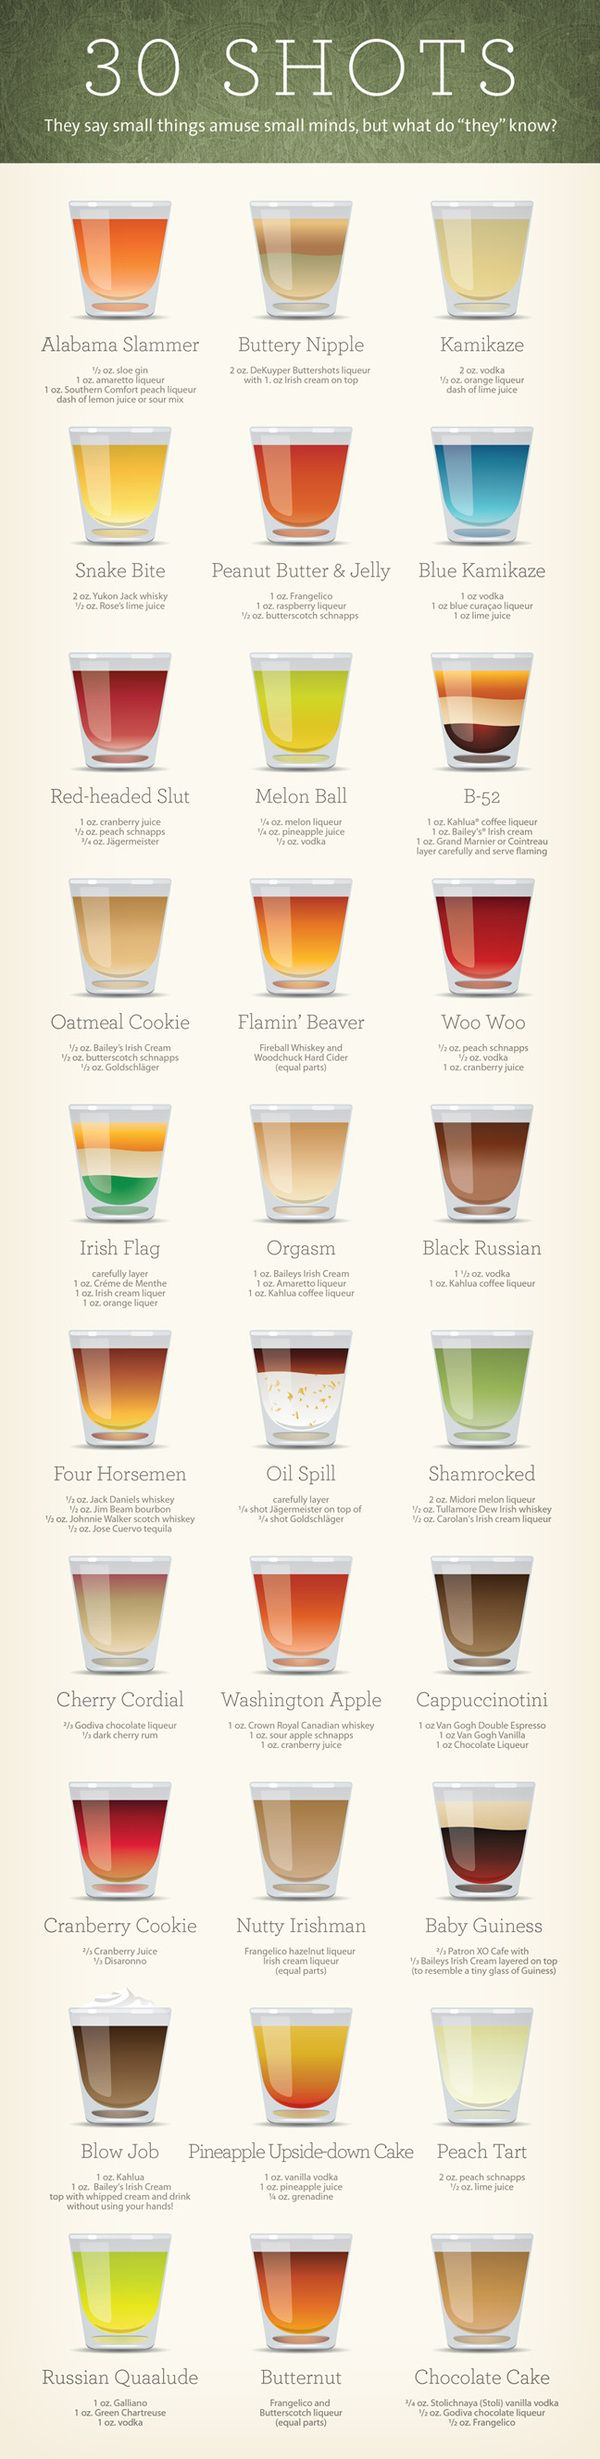 30 Shots, I don't drink a lot but this is still cool to see. Drink ideas, parties, going out